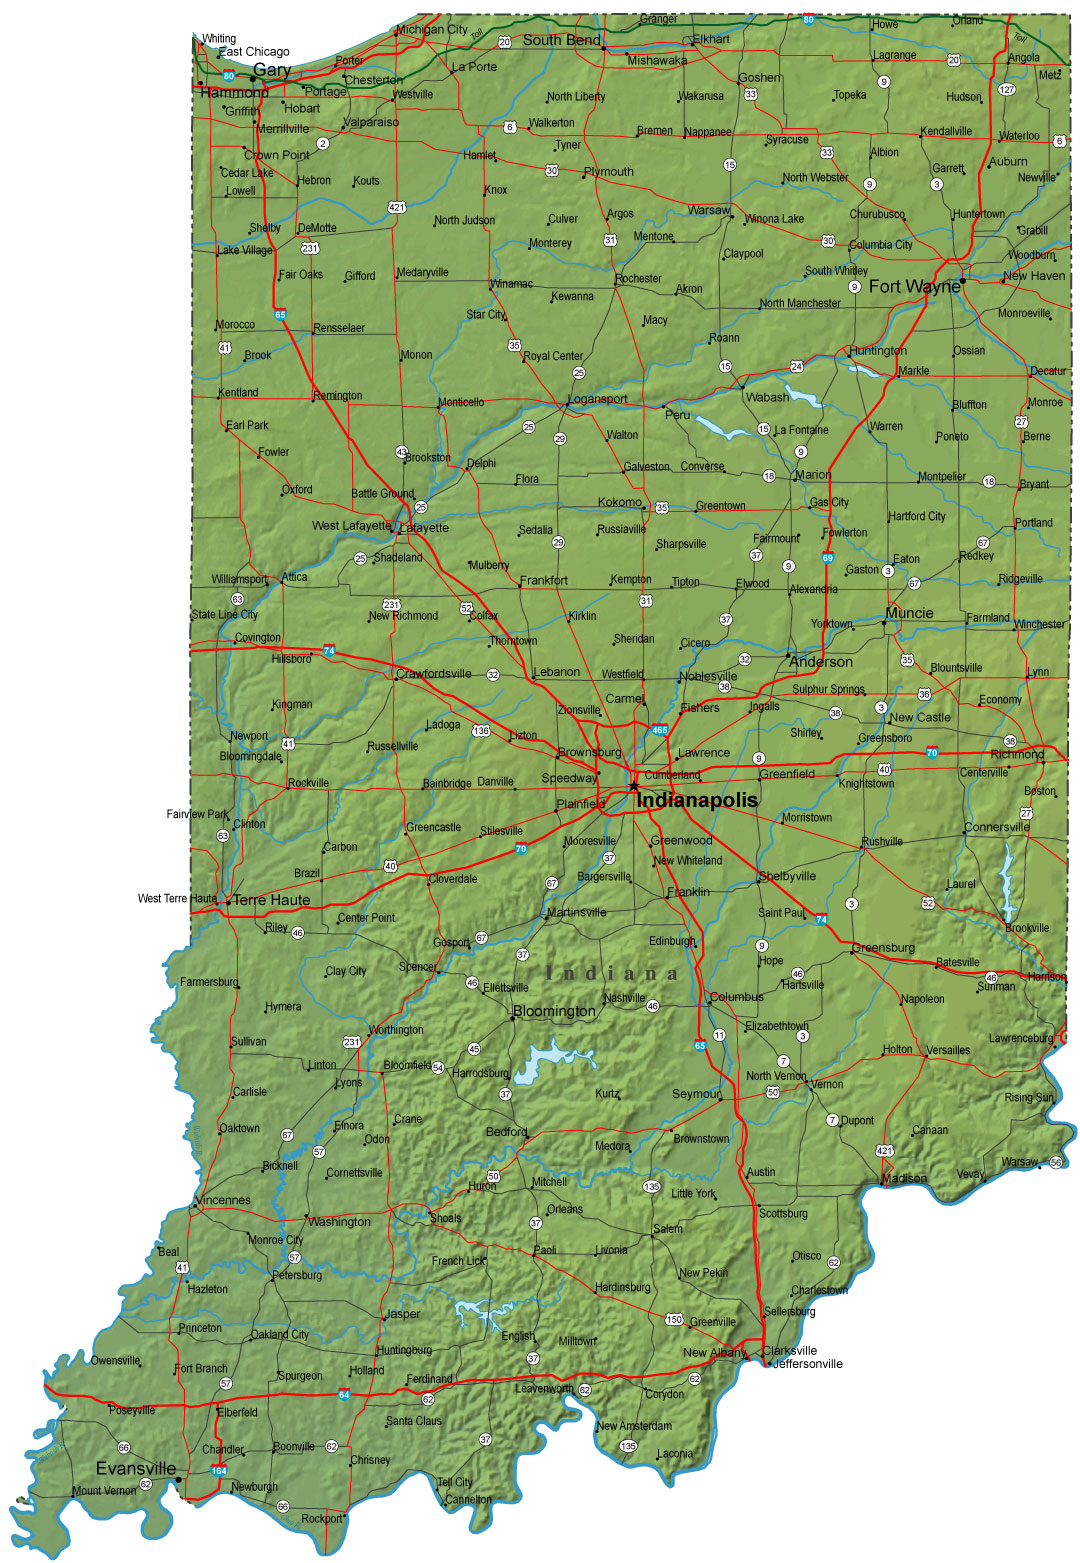 Detailed Indiana Road Map Indiana Mappery - Indiana road map